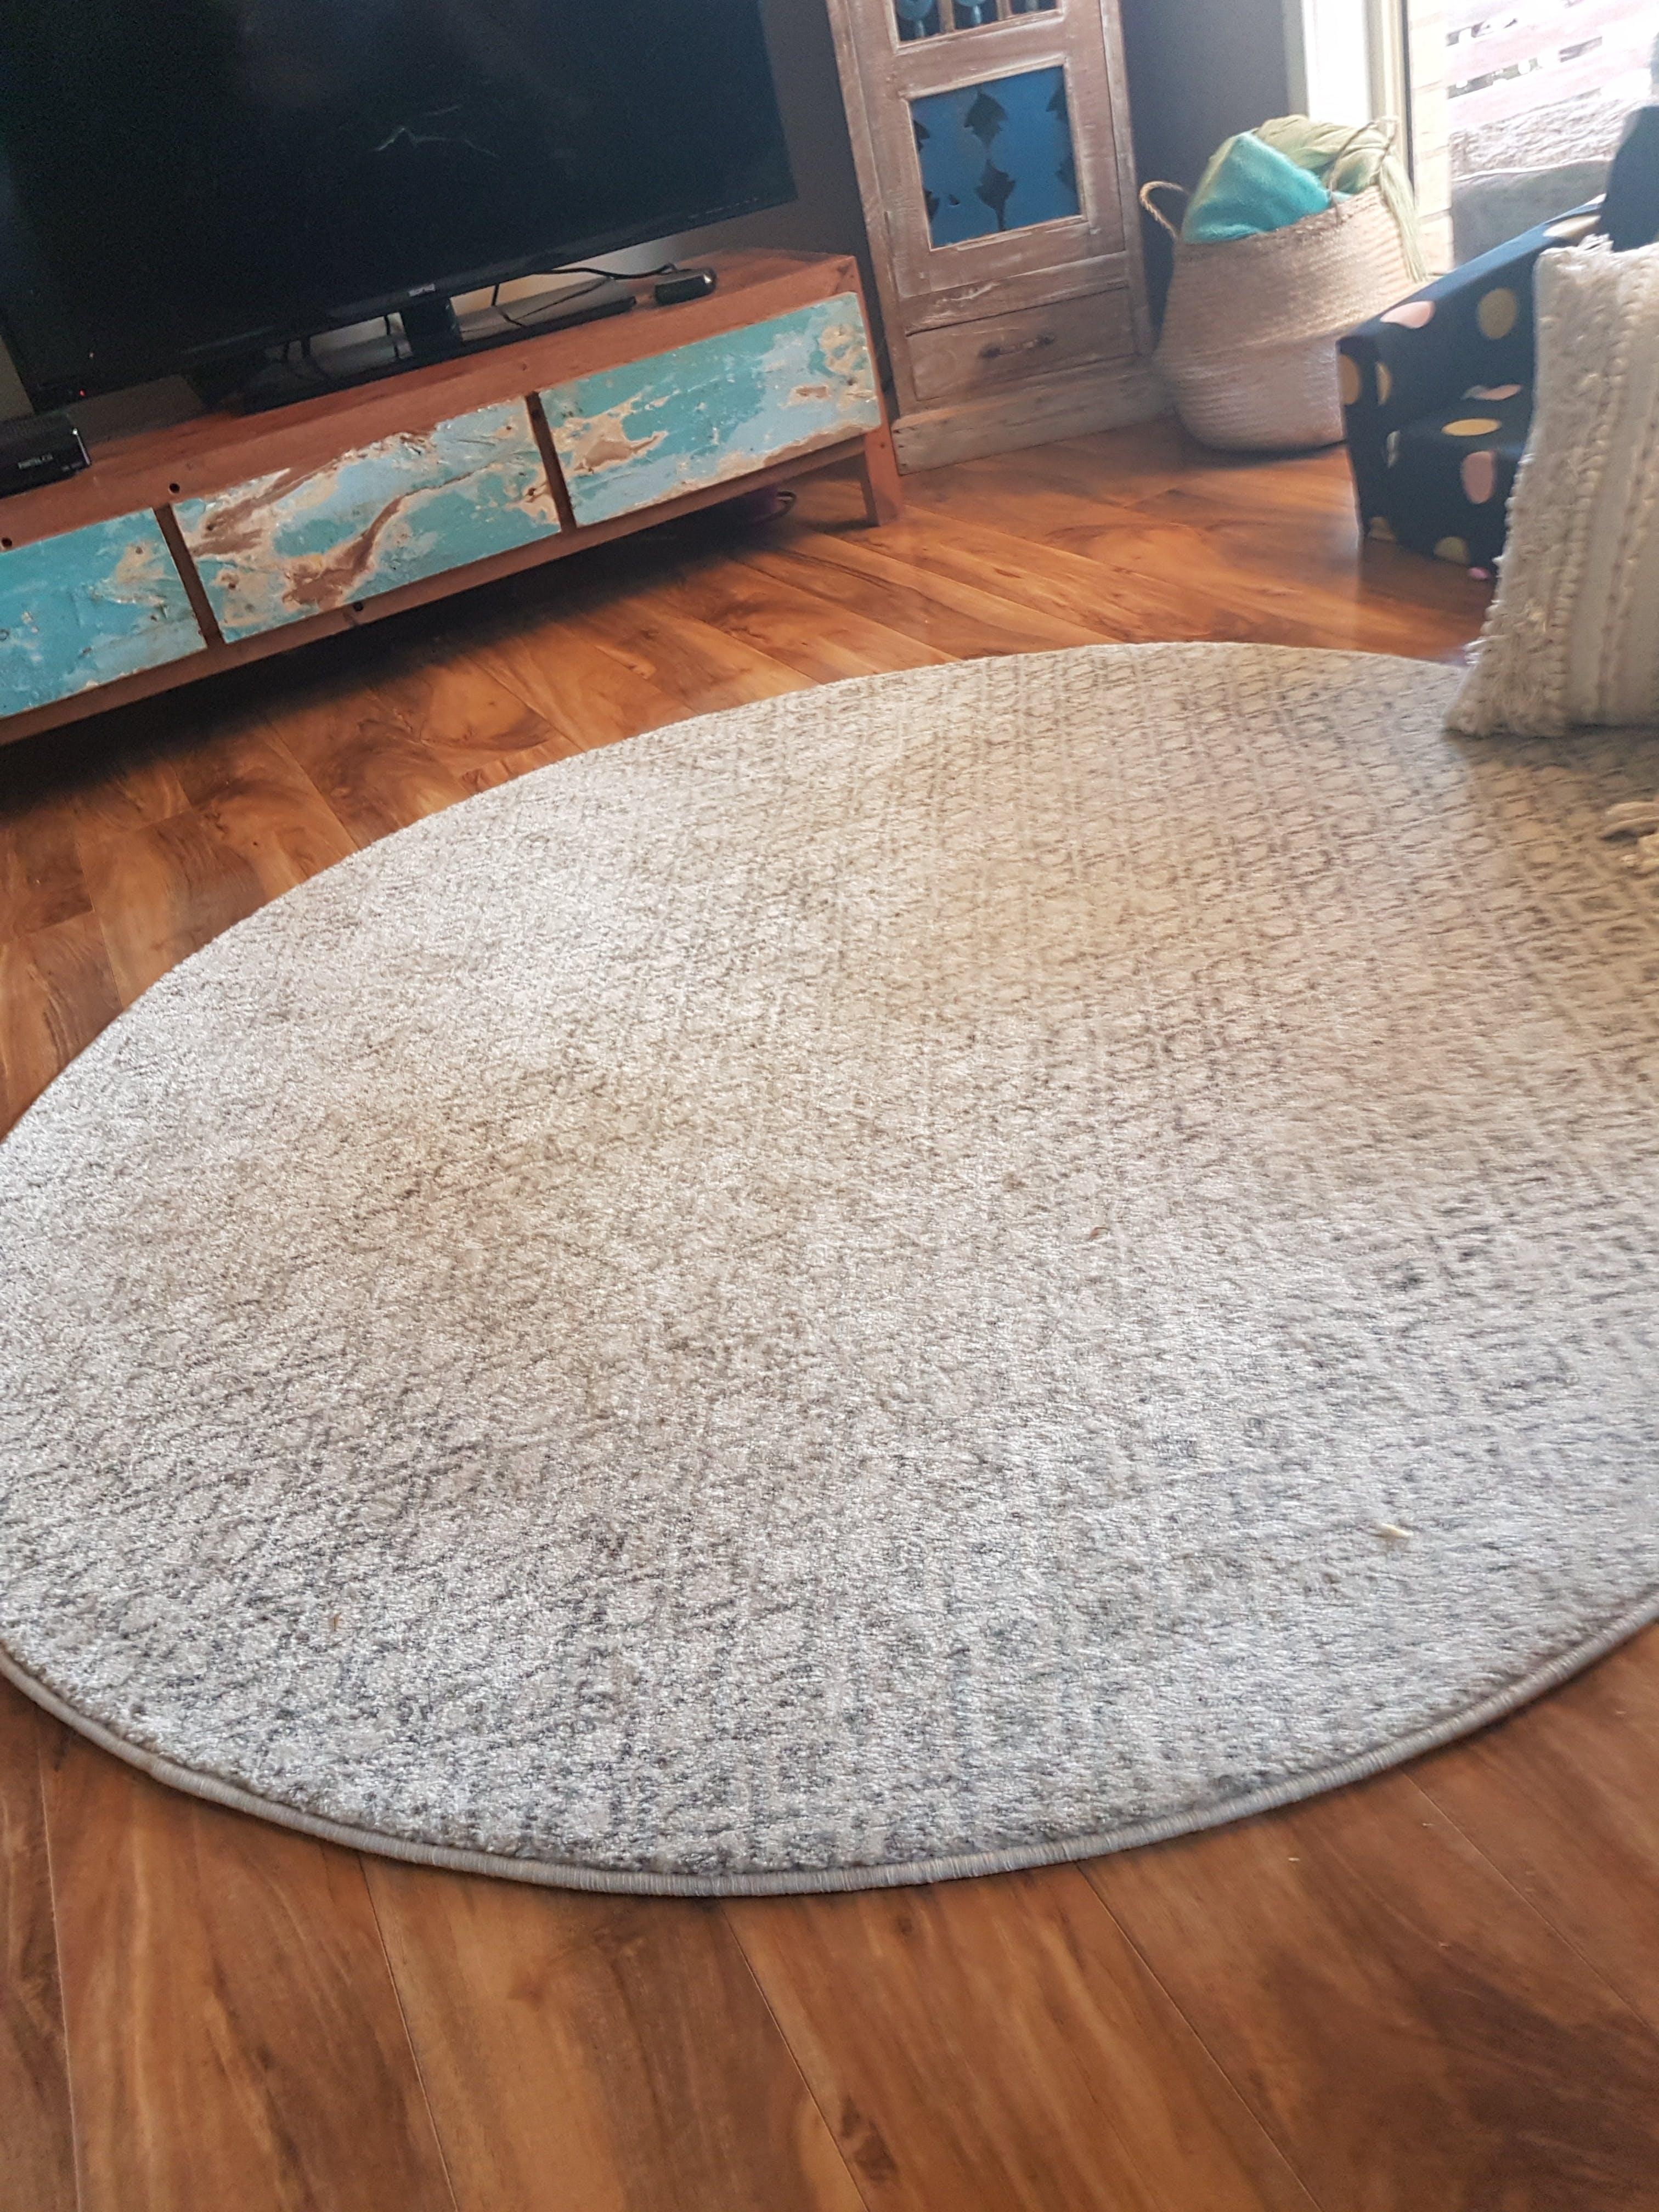 Rugsofbeauty Com Au Replied Hi Perry Thanks Very Much For Reviewing The Rug You Purchased From Us We Are So Glad That Hy With Your Purchase